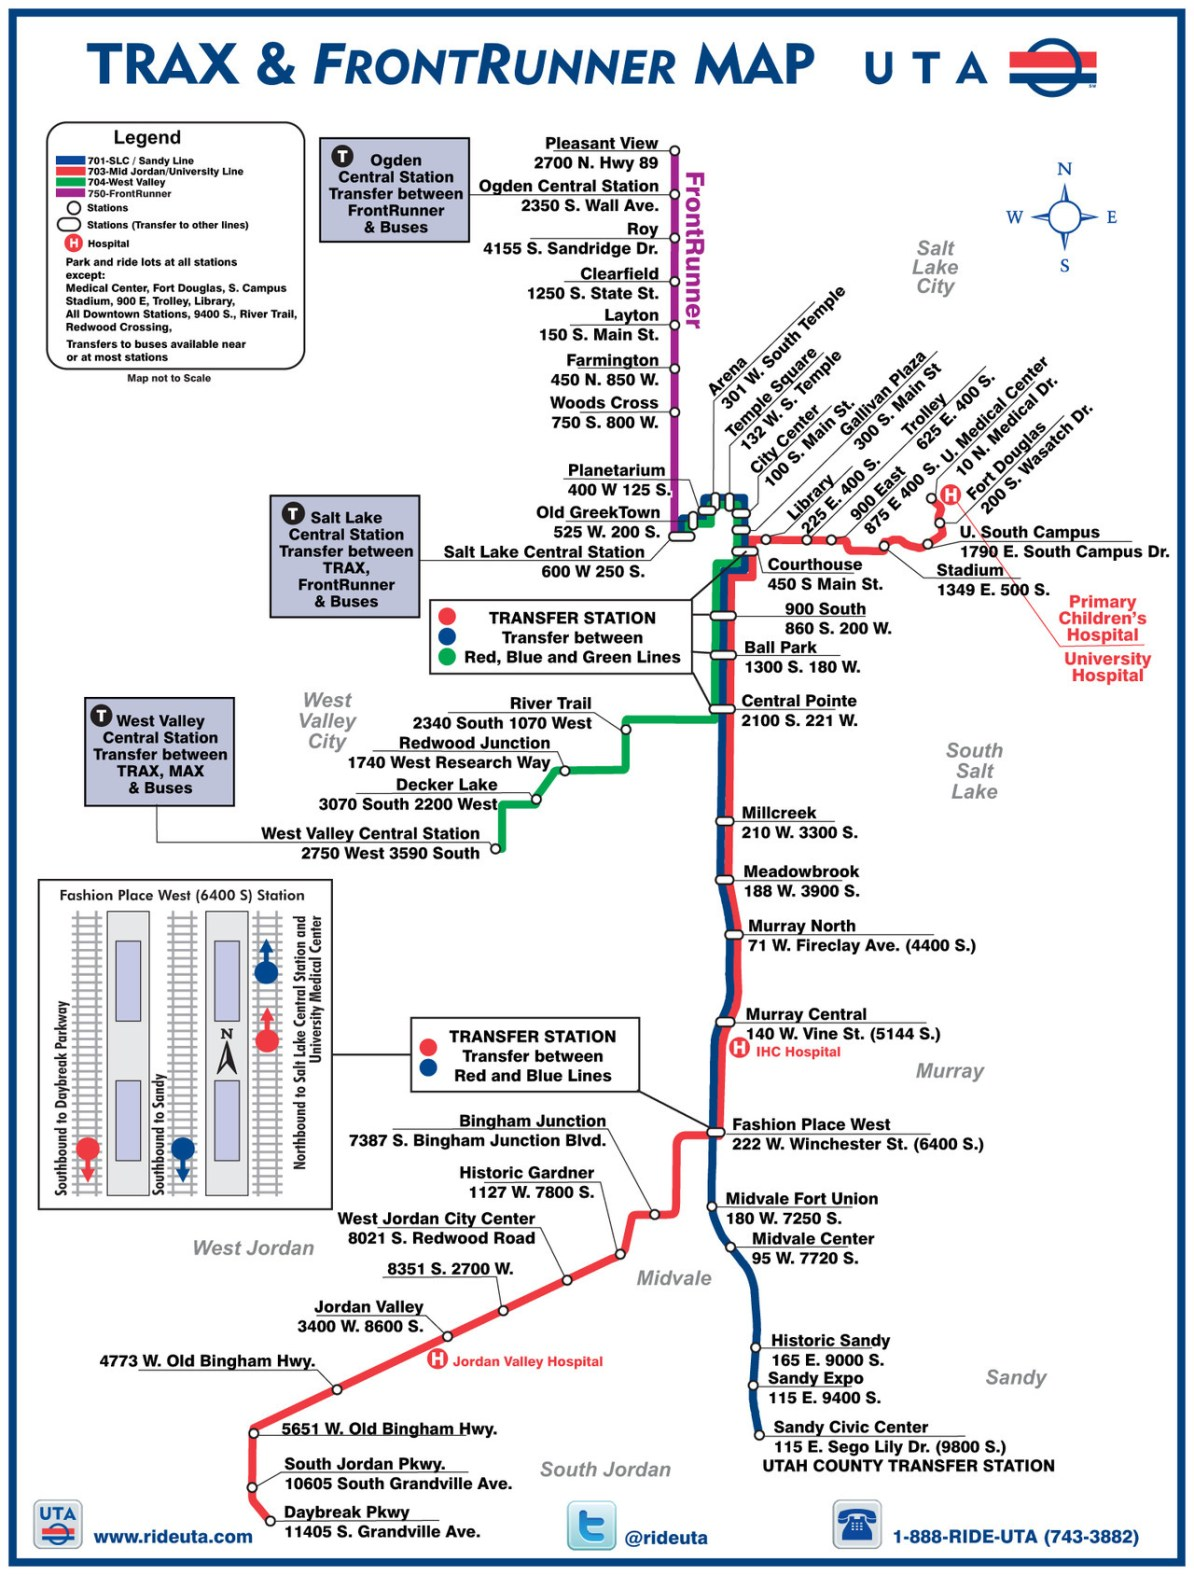 Transit Maps: Official Map: TRAX and FrontRunner Rail Map ... on cincinnati public transportation map, santa clara public transportation map, boston public transportation map, florida public transportation map,